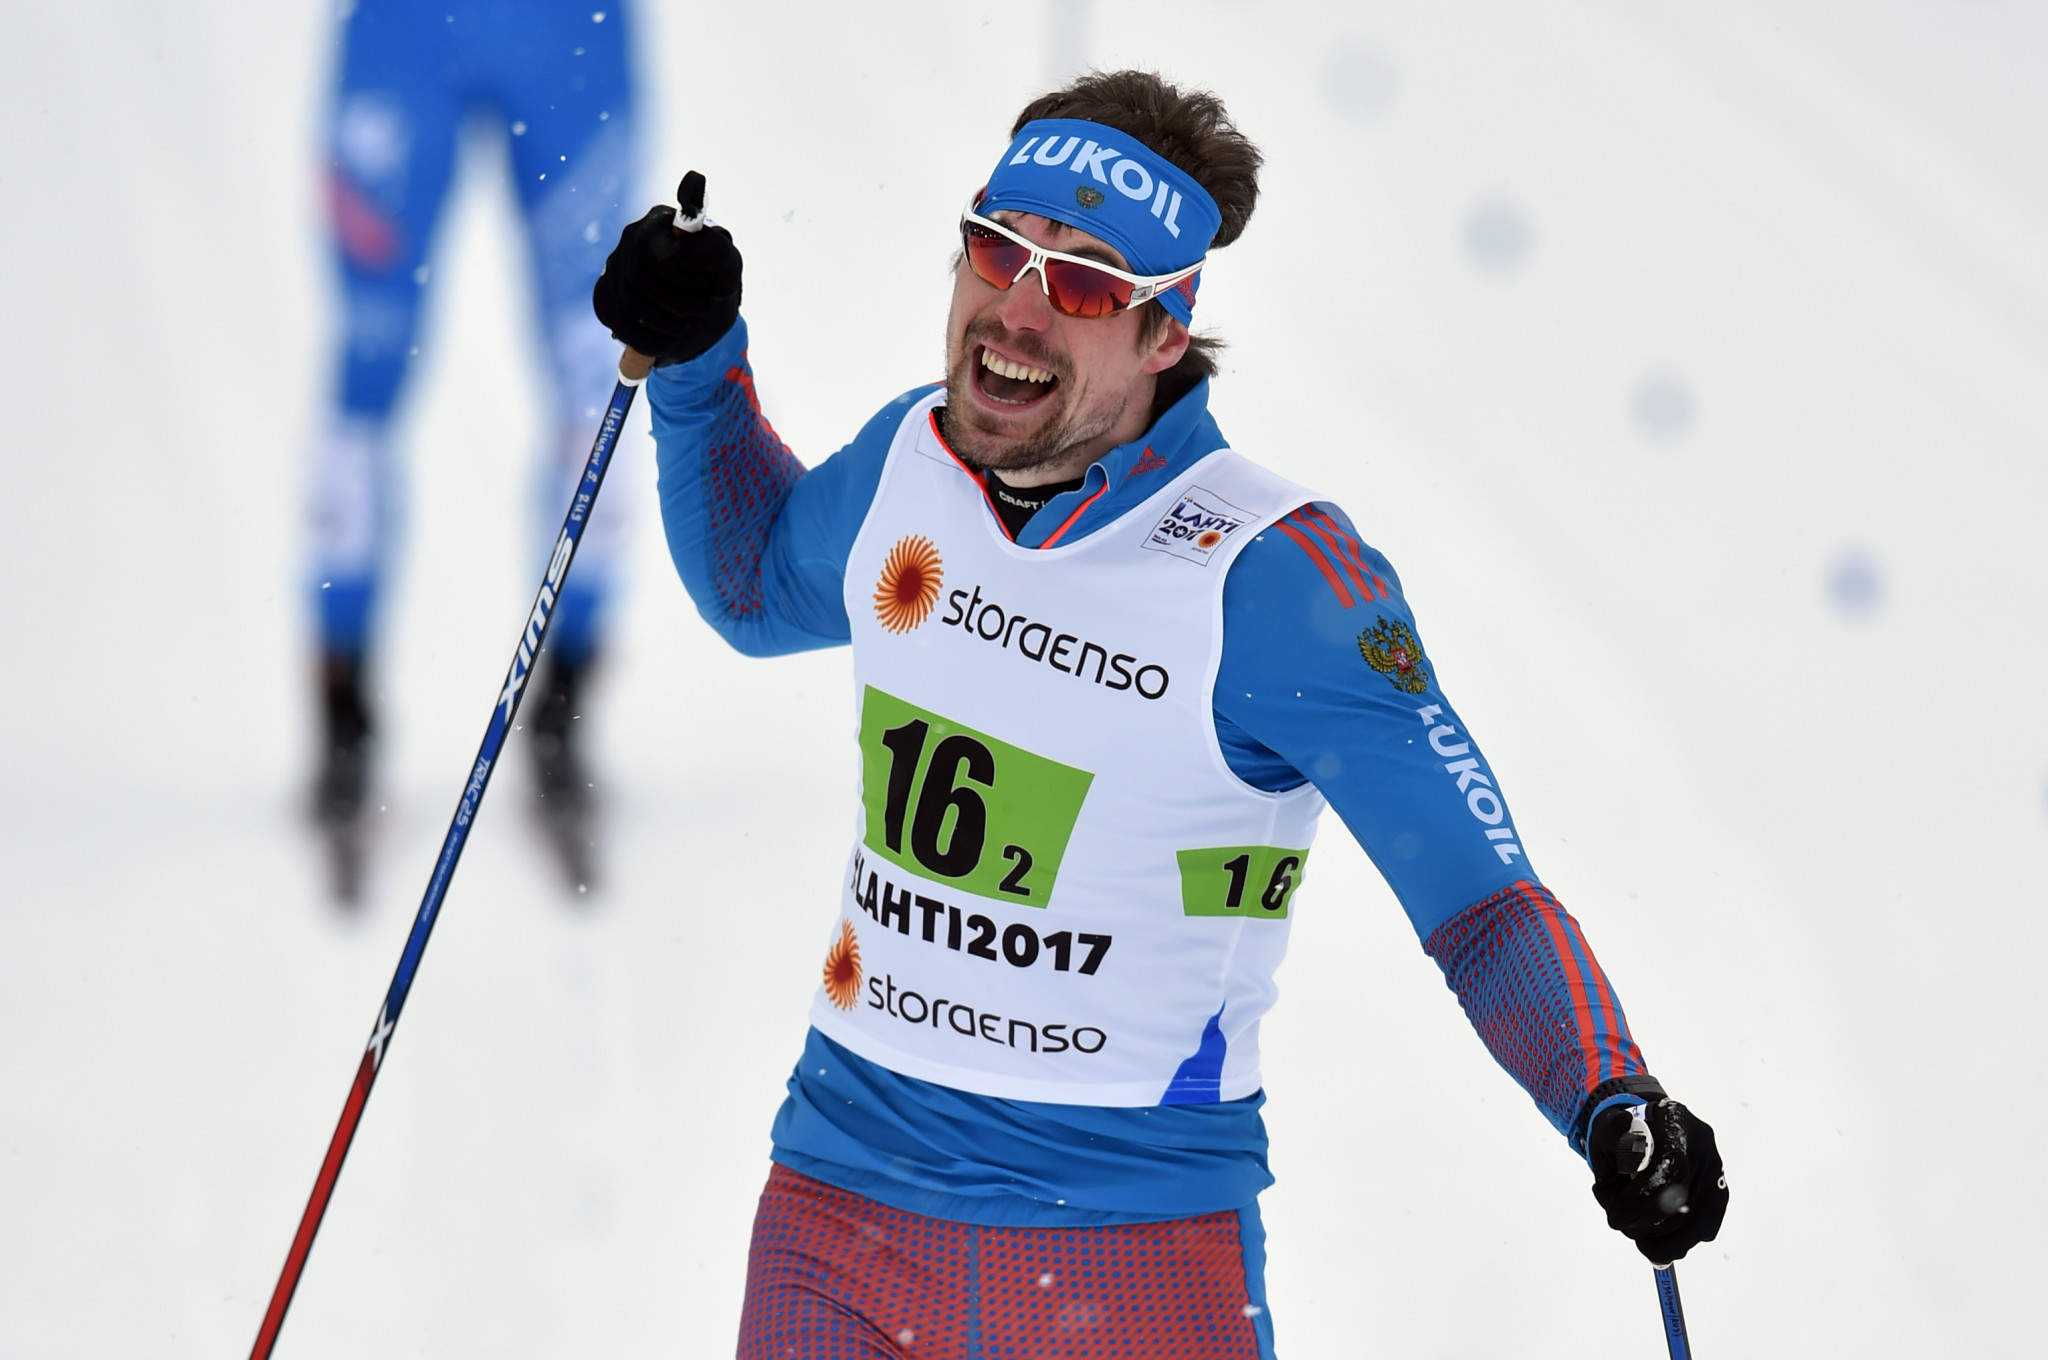 Ustyugov avoids significant injury in pre-Nordic World Ski Championships training fall